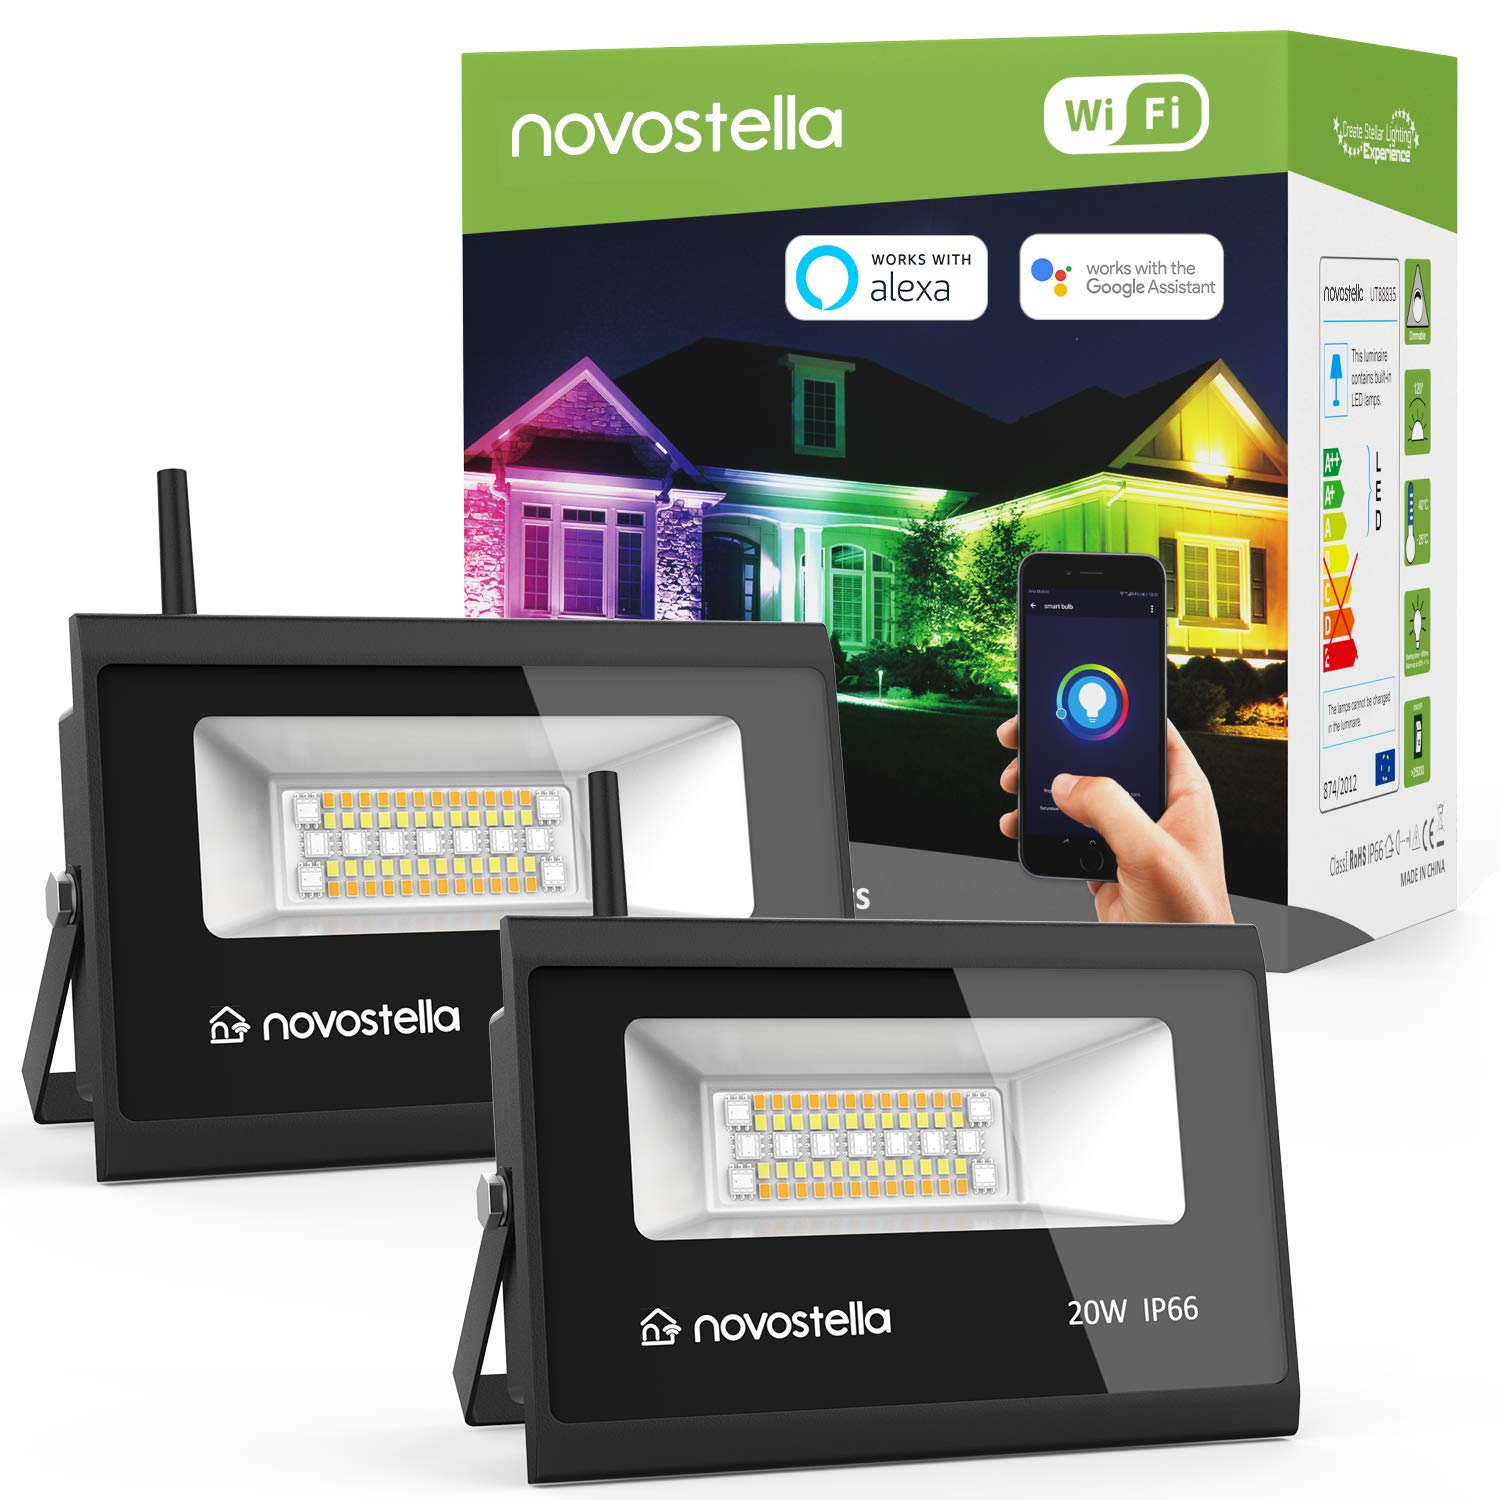 Novostella 2 Pack 20W Smart LED Flood Lights, RGBCW, 2700K-6500K, 2000LM, WiFi Outdoor Dimmable Color Changing Stage Light, IP66 Waterproof, Multicolor Wall Washer Light, Work with Alexa, Google Home by NOVOSTELLA